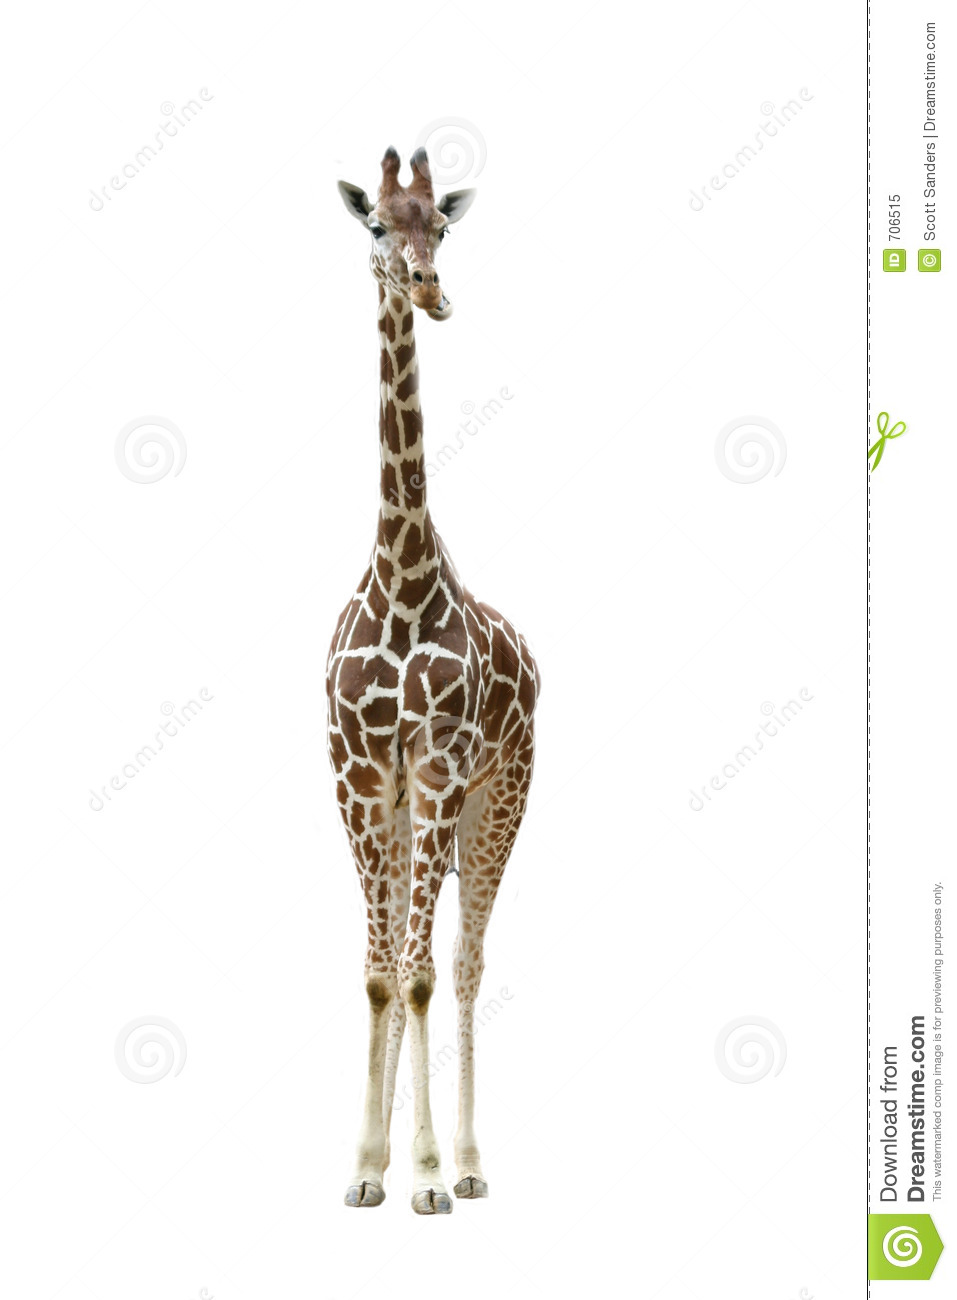 Front View Giraffe Royalty Free Stock Photo - Image: 706515